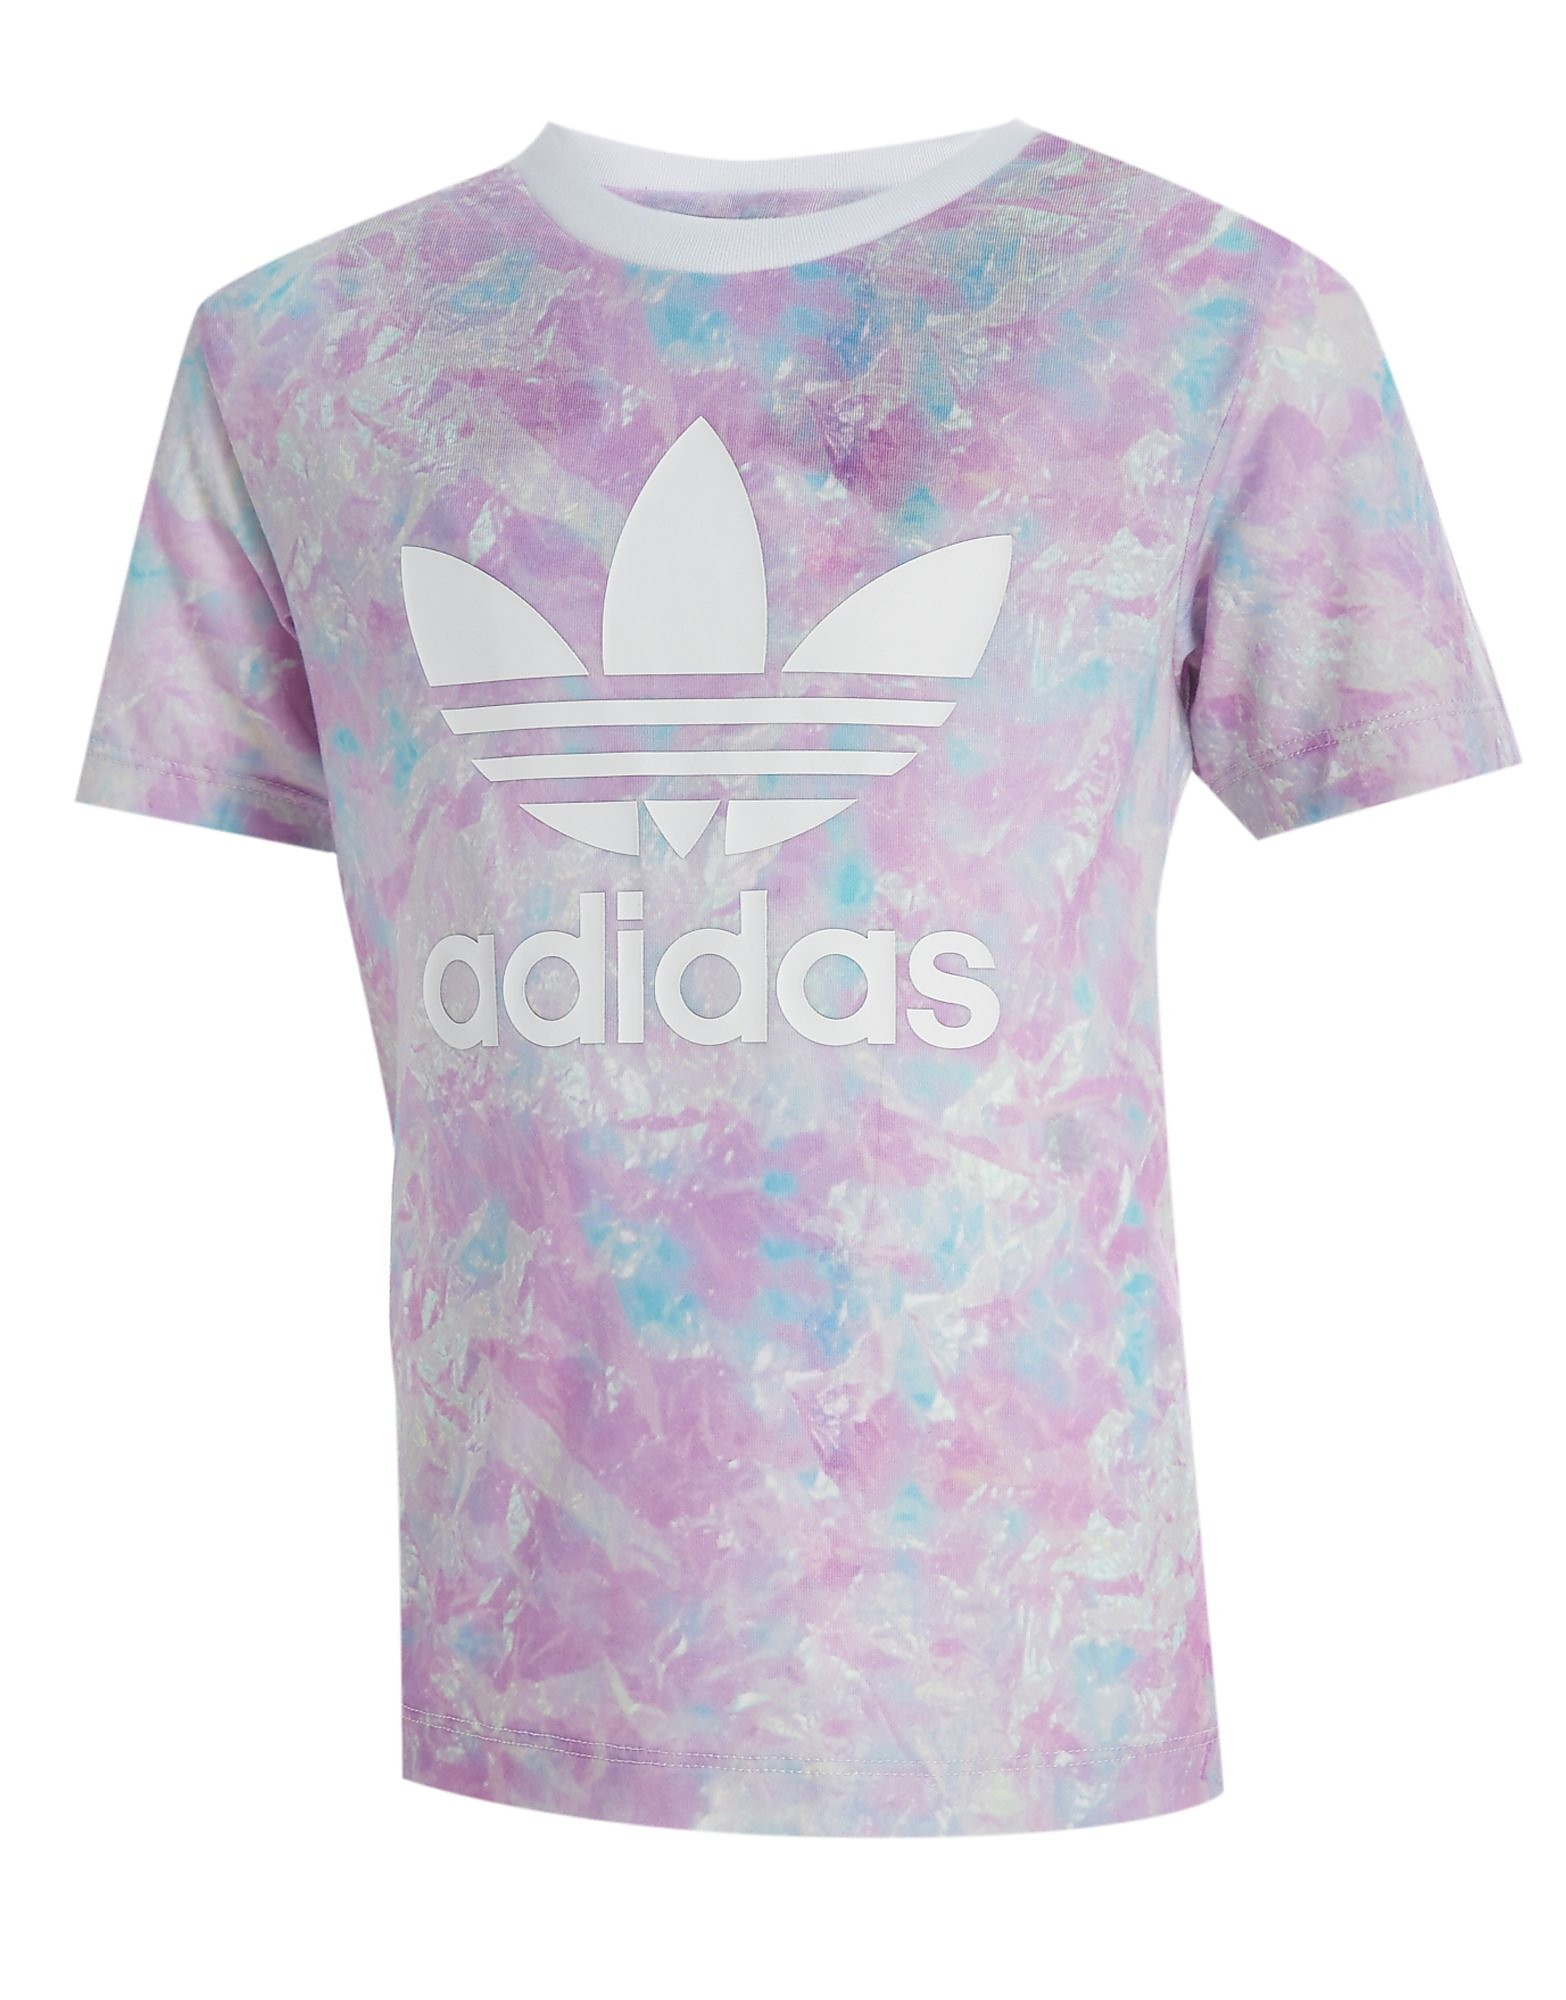 adidas Originals Girls' All Over Print T-Shirt Children